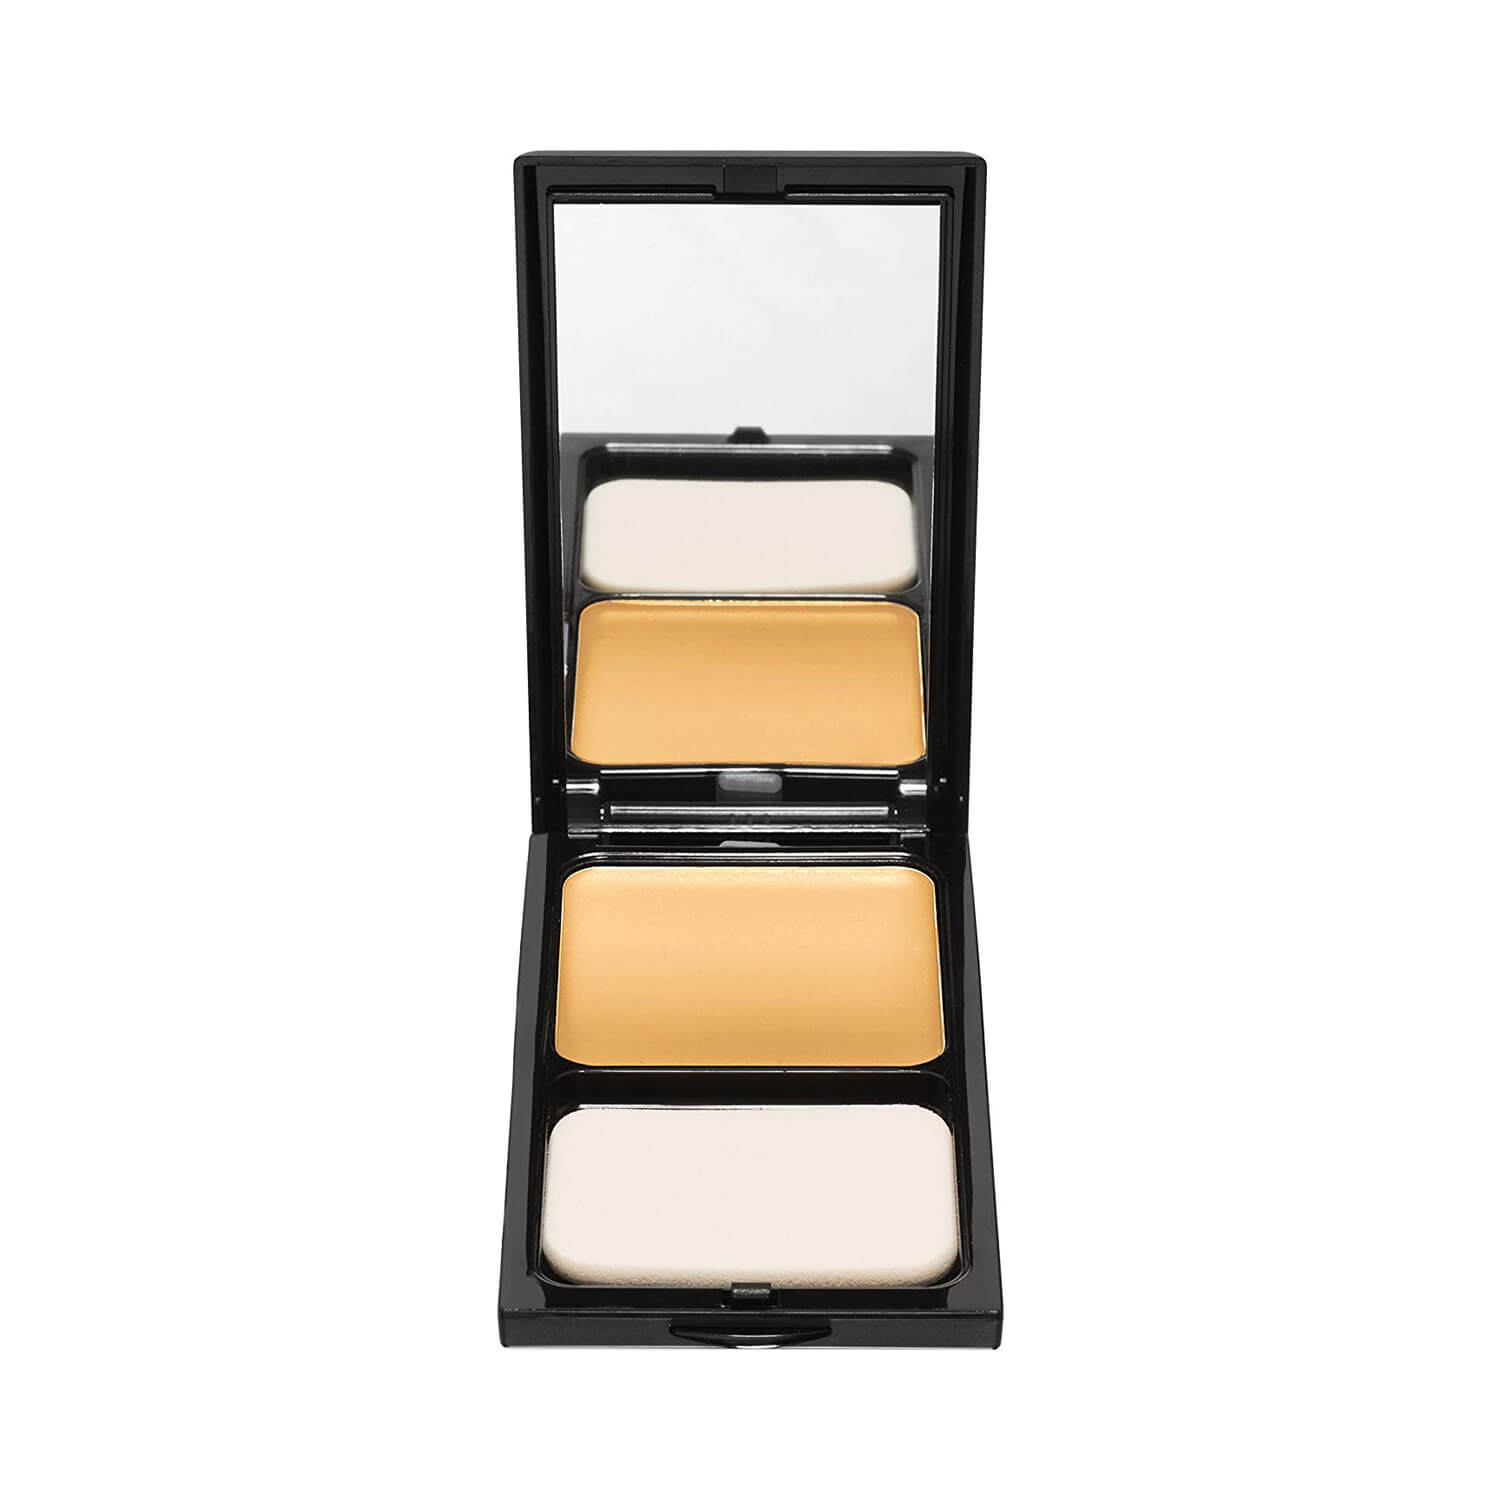 Sacha Cosmetics Buttercup Compact Powder